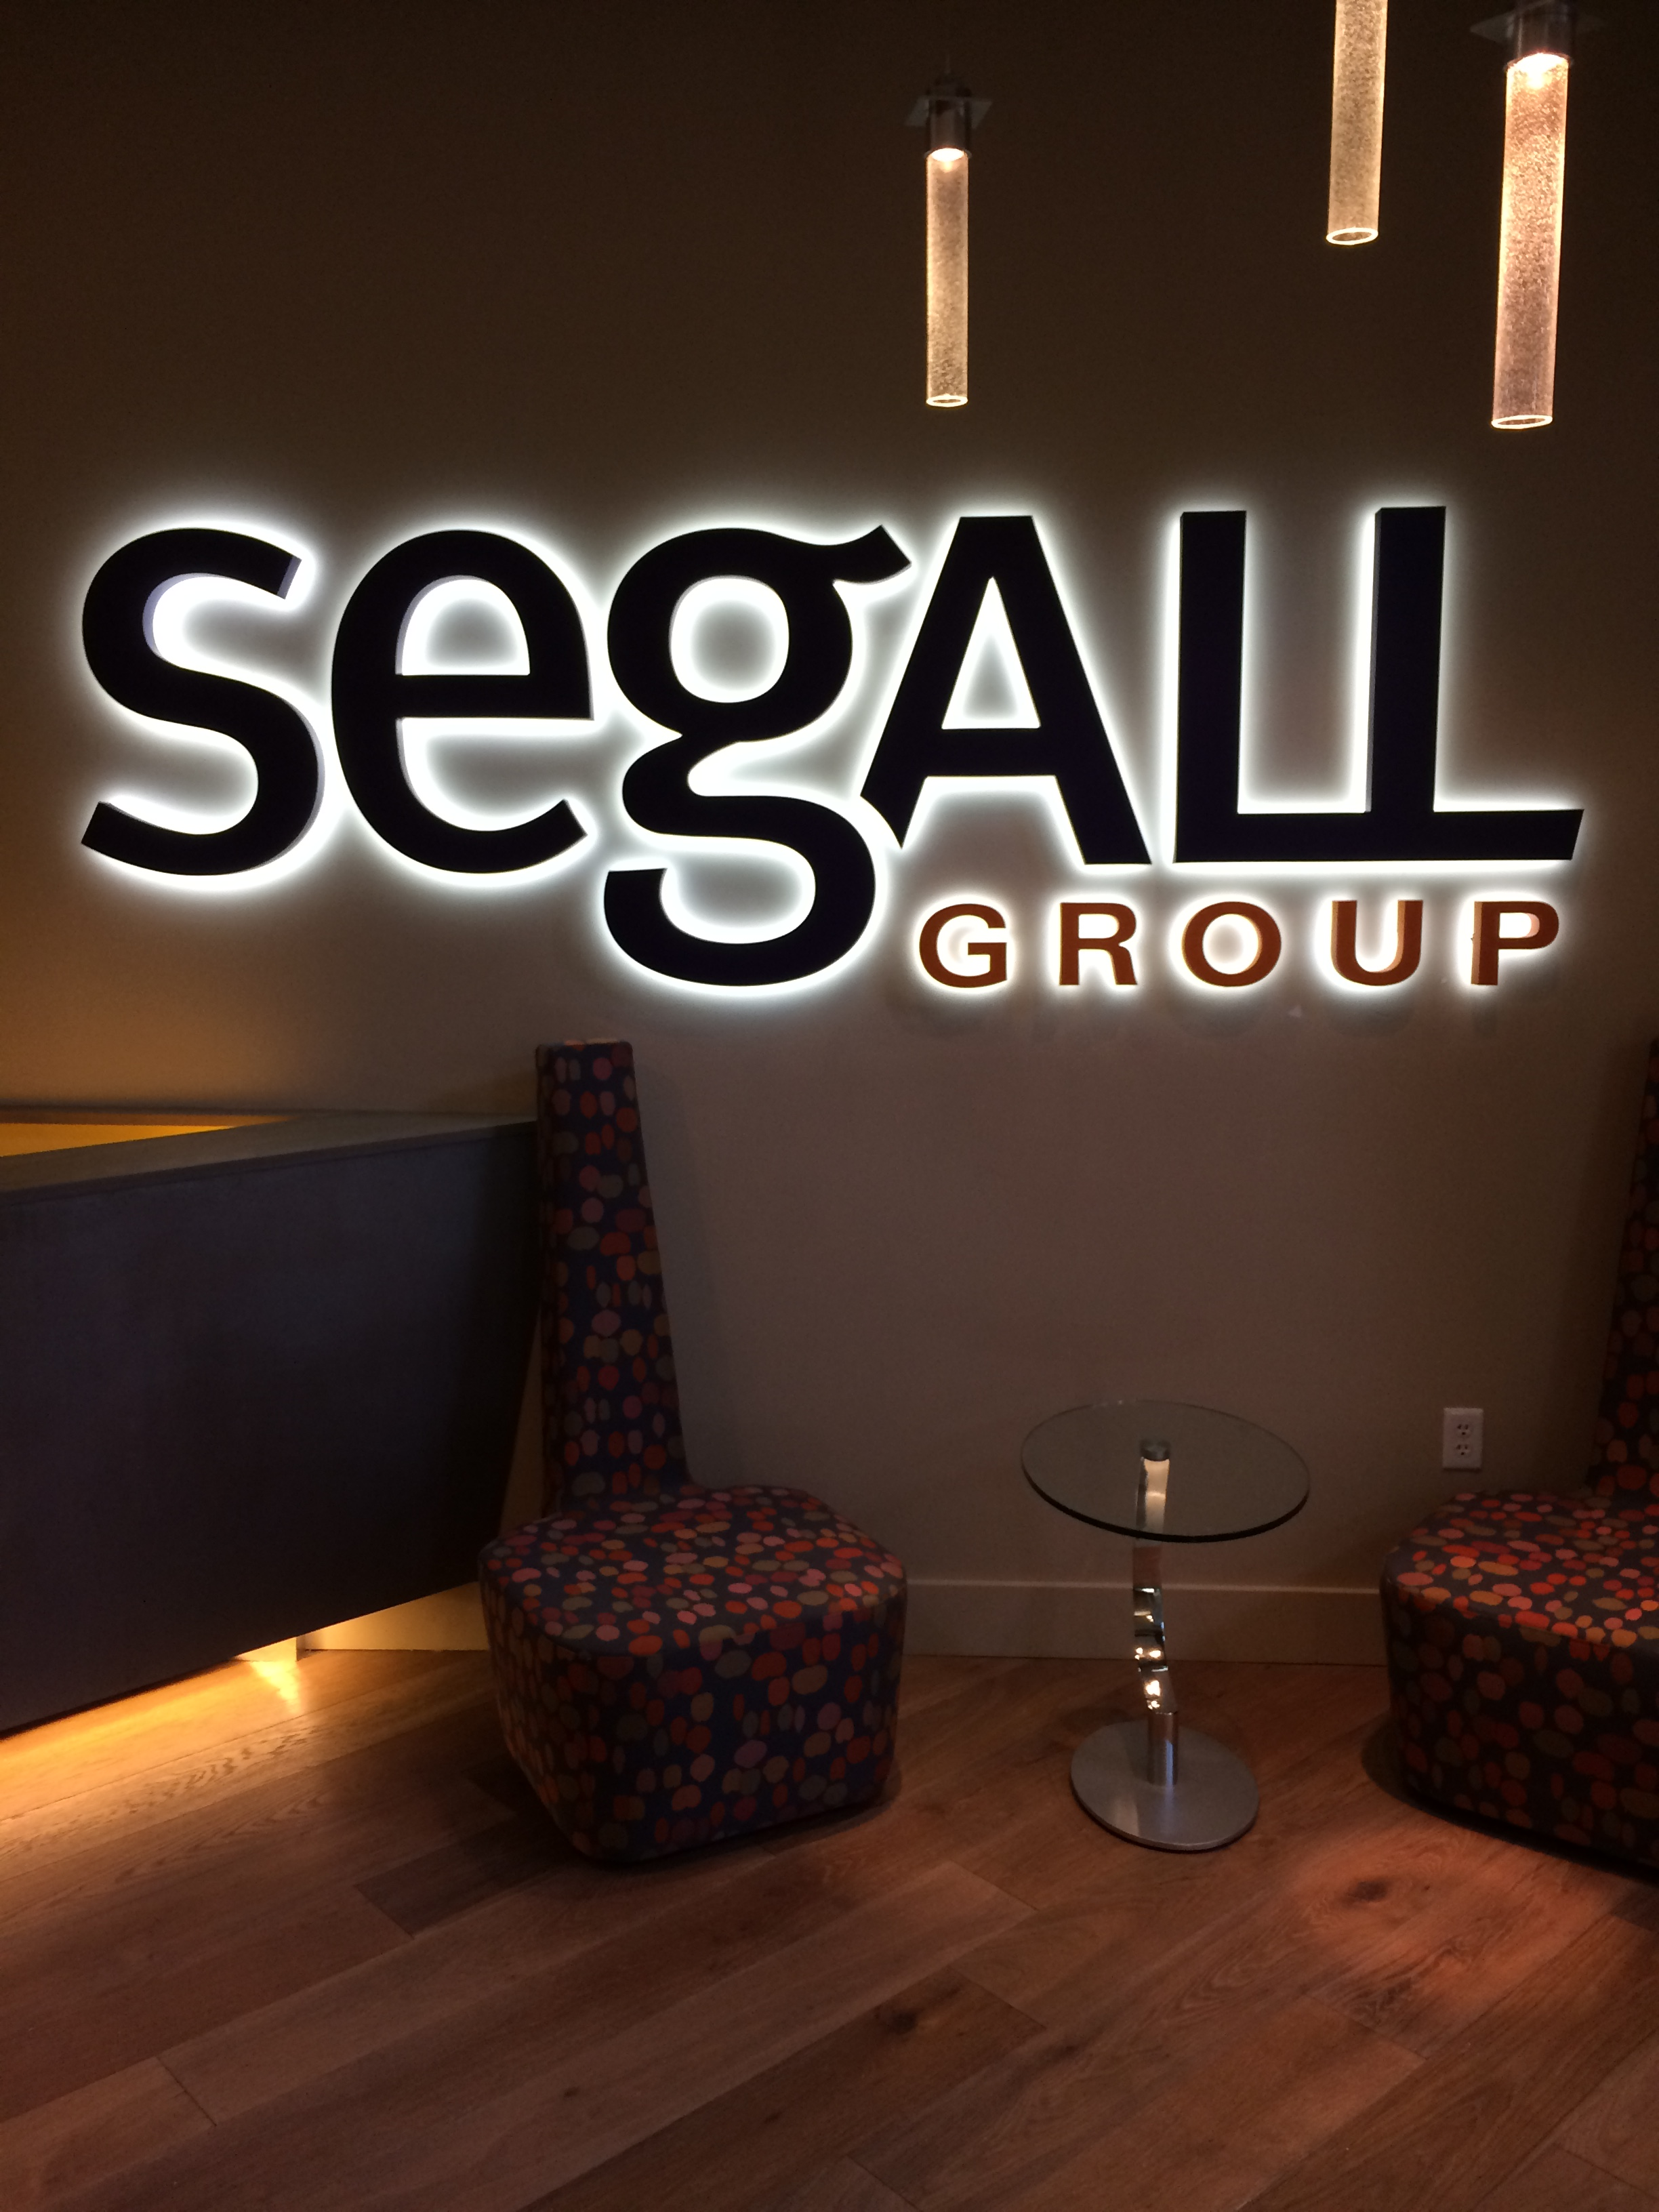 Segall Group - Halo Lettering